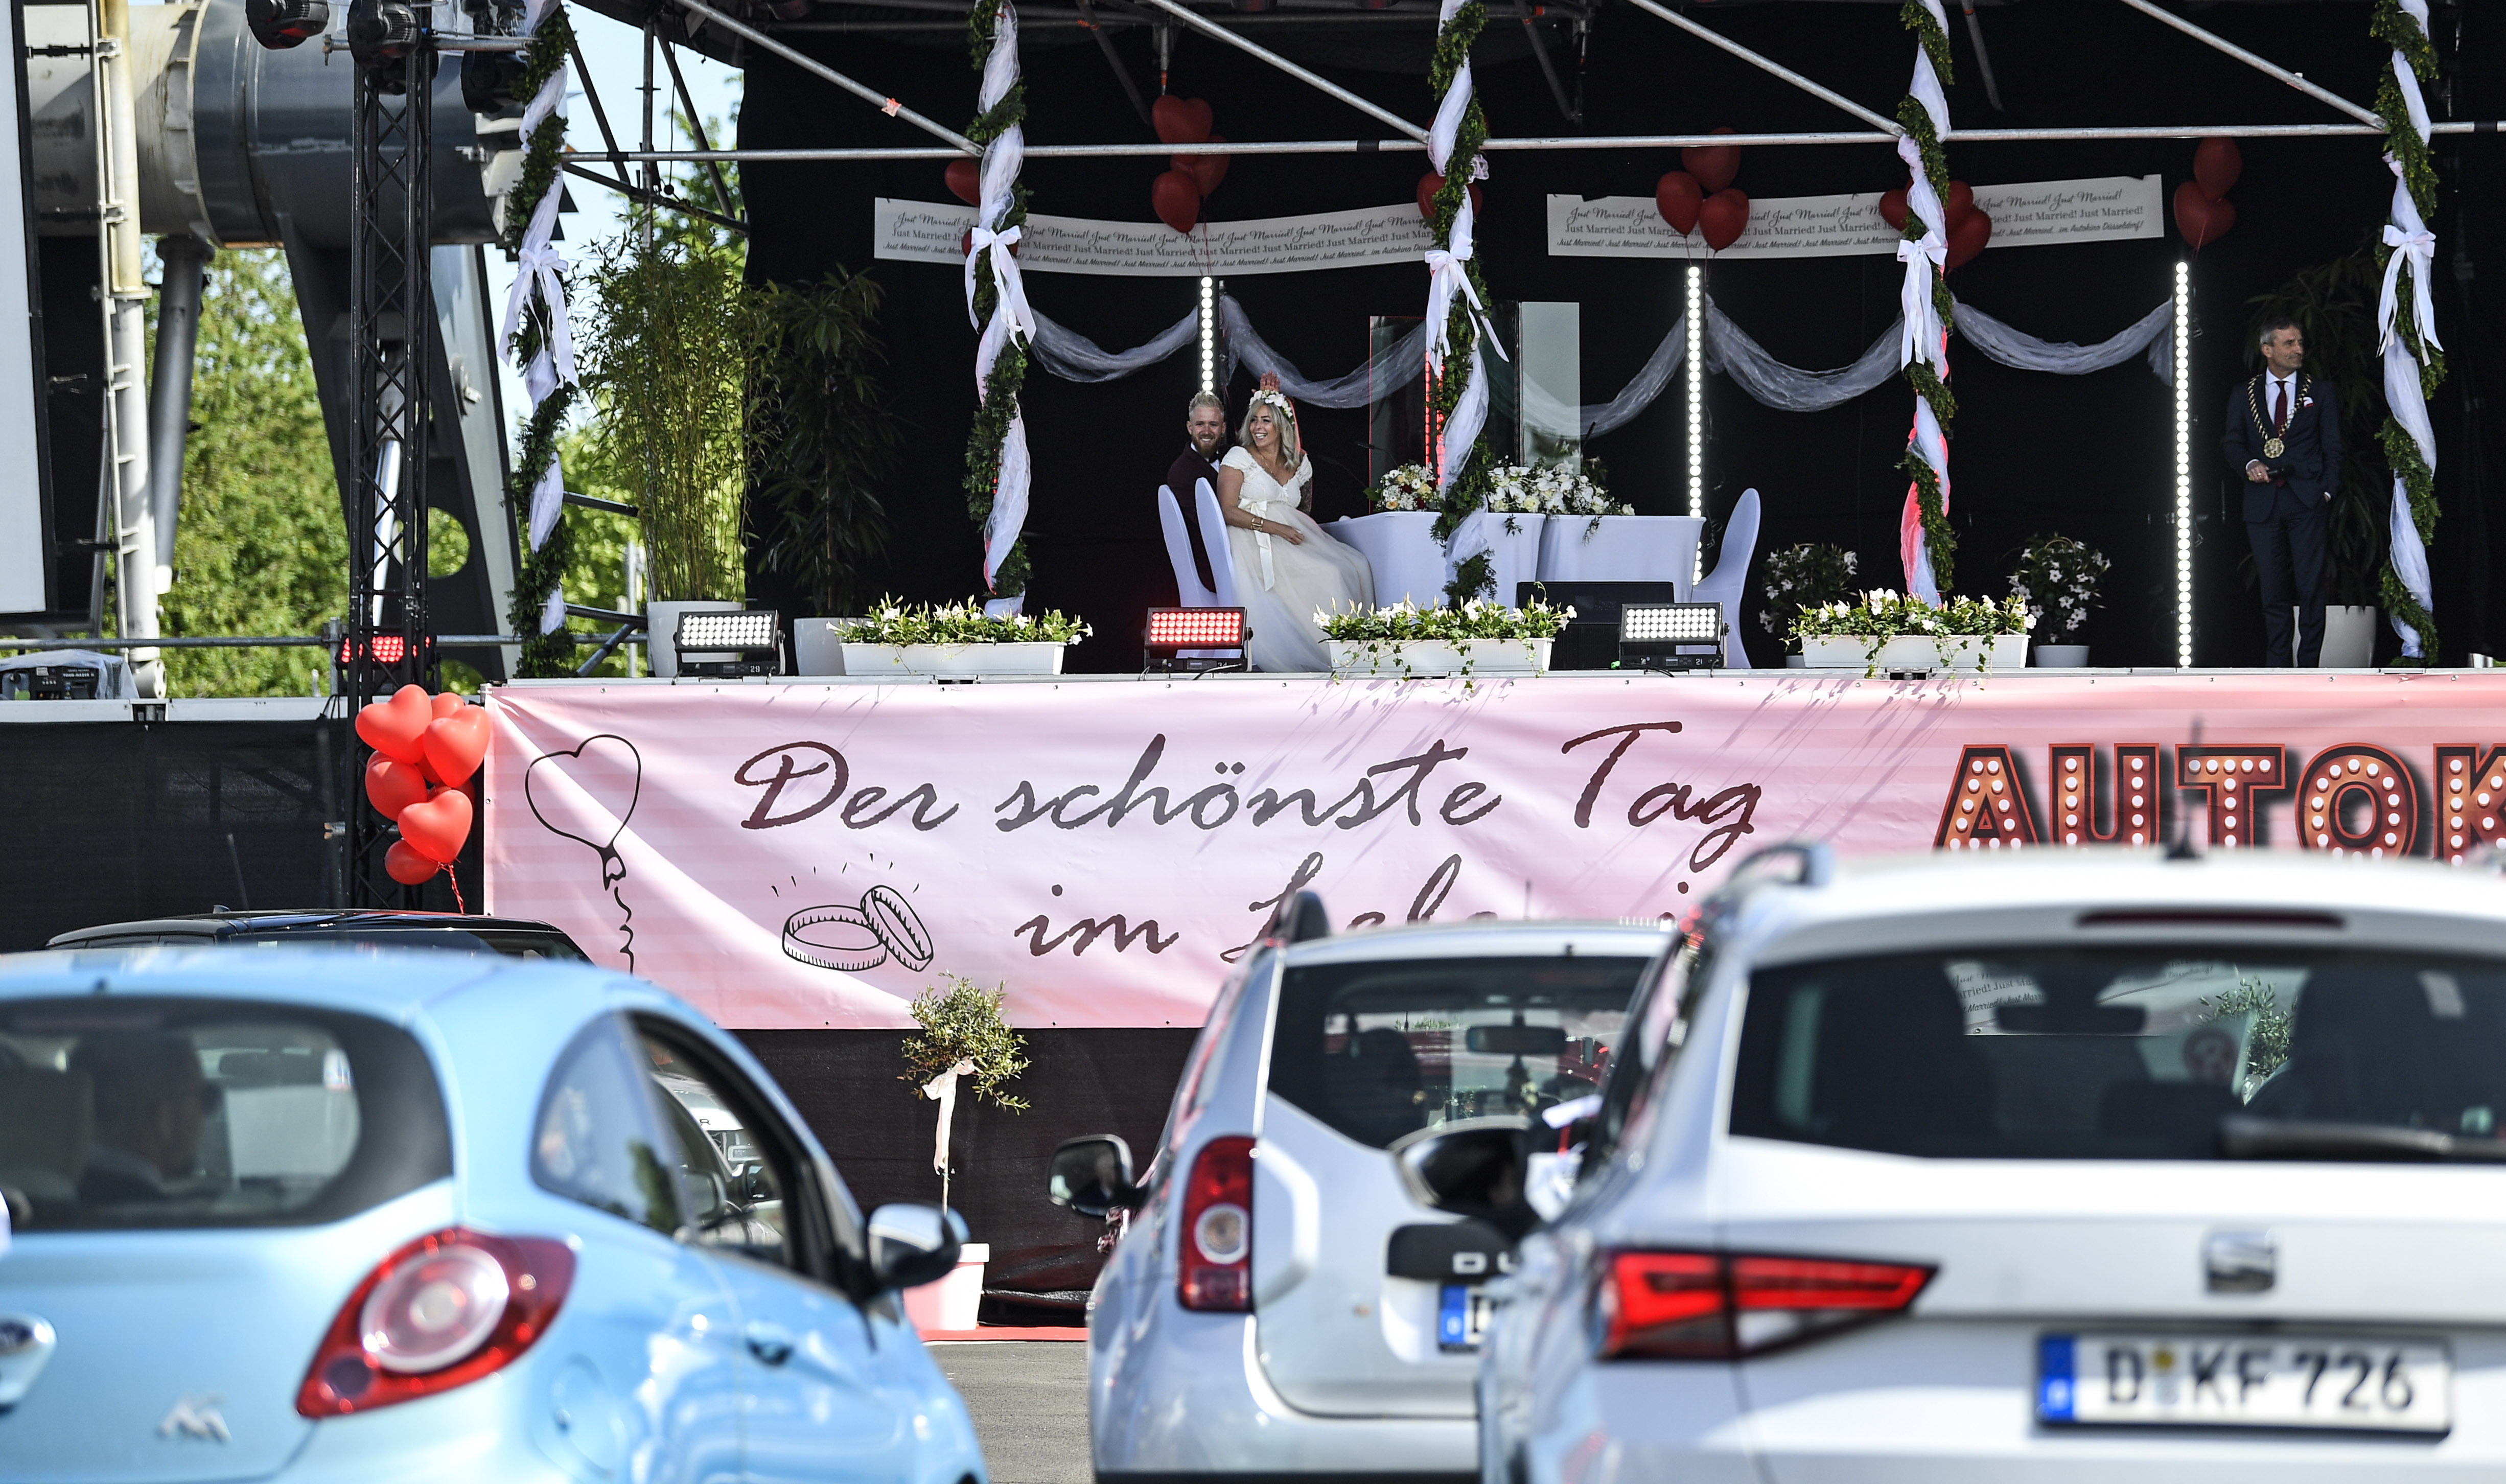 As weddings at registry offices are limited due to coronavirus, a drive-in cinema in Germany has started registering official marriages on its stage. In this picture, relatives and friends of bridal couple - Janine and Philip - attend the marriage ceremonies in their cars.